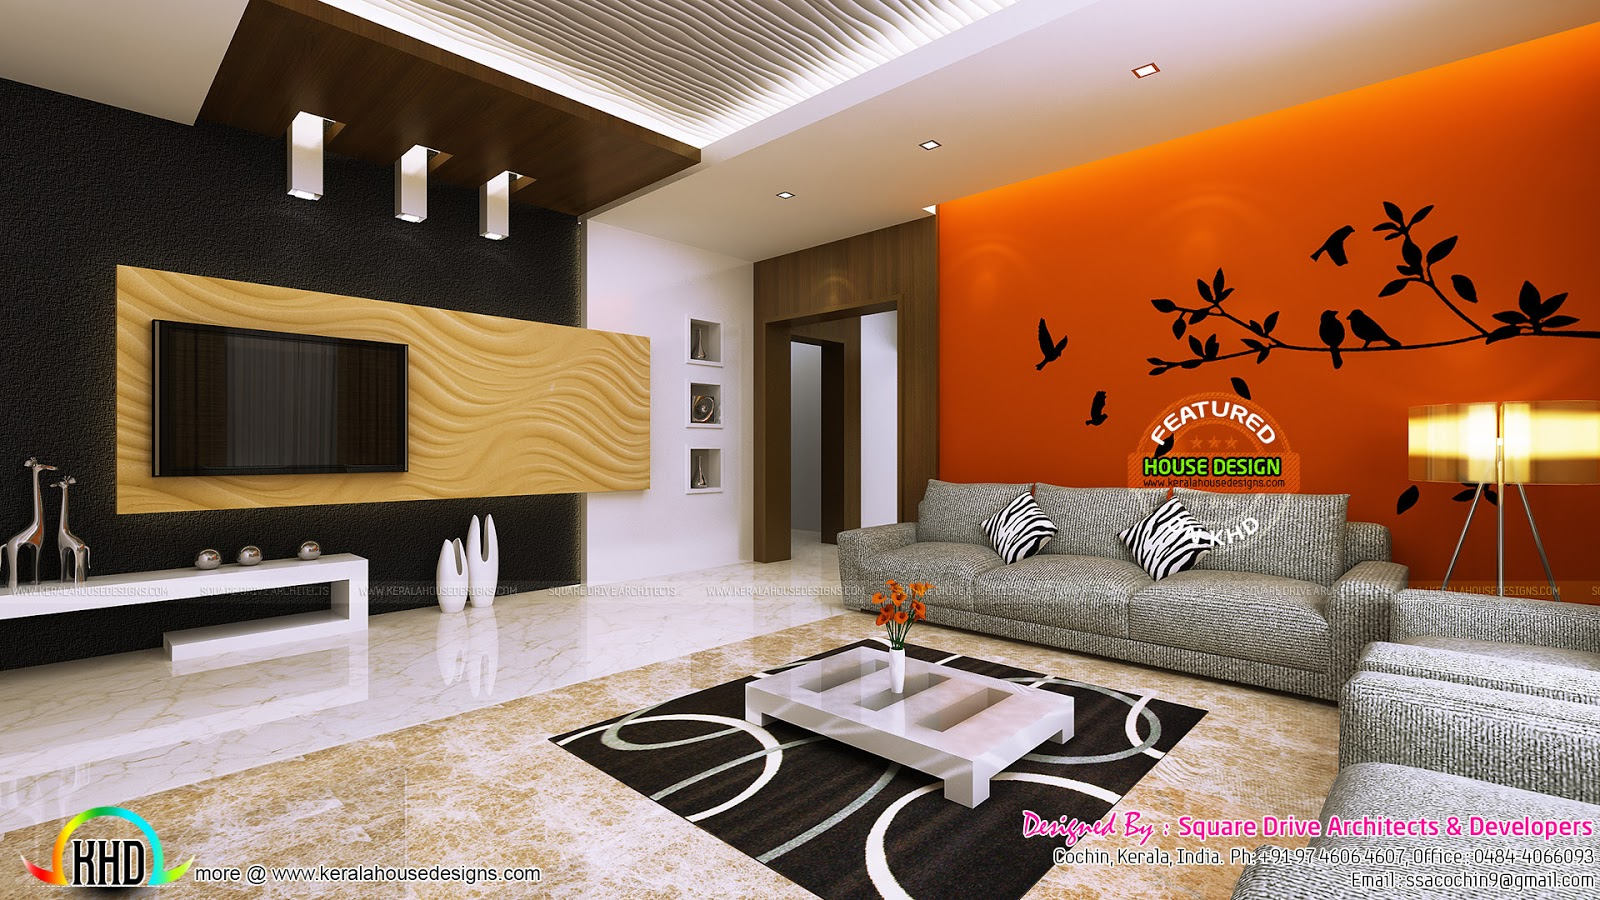 Kerala home interior design living room picture for Kerala house living room interior design